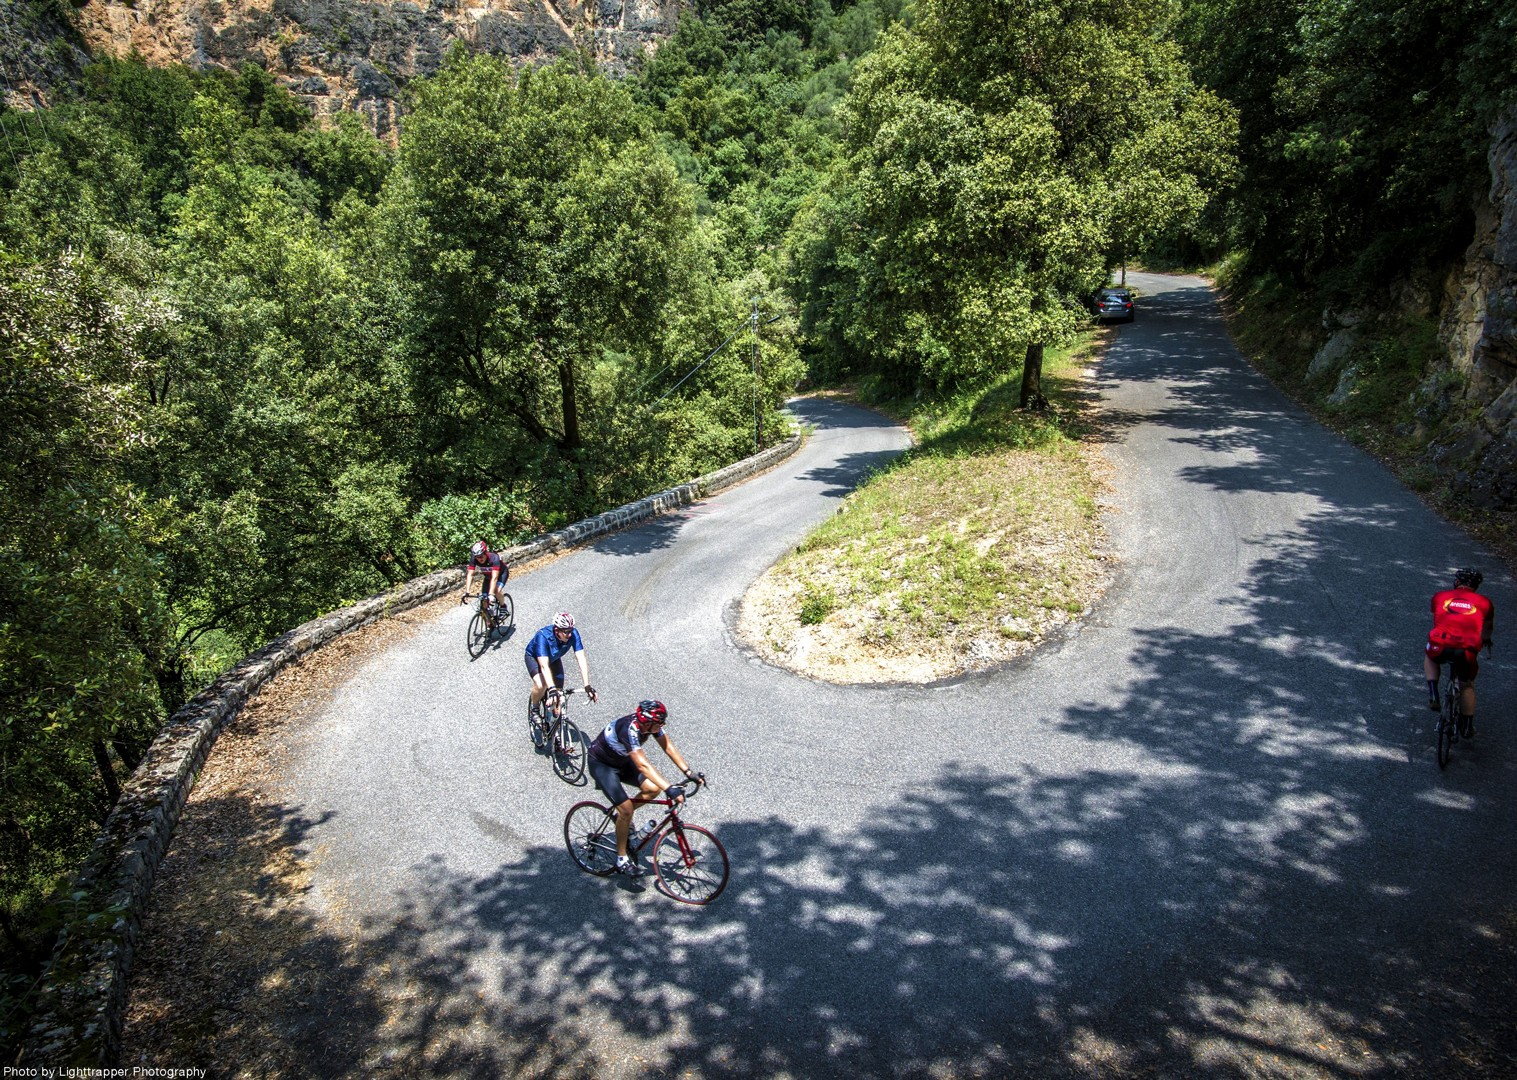 col-de-turini-road-cycling-holiday-france.jpg - NEW! France - Provence - Alpes Maritimes - Road Cycling